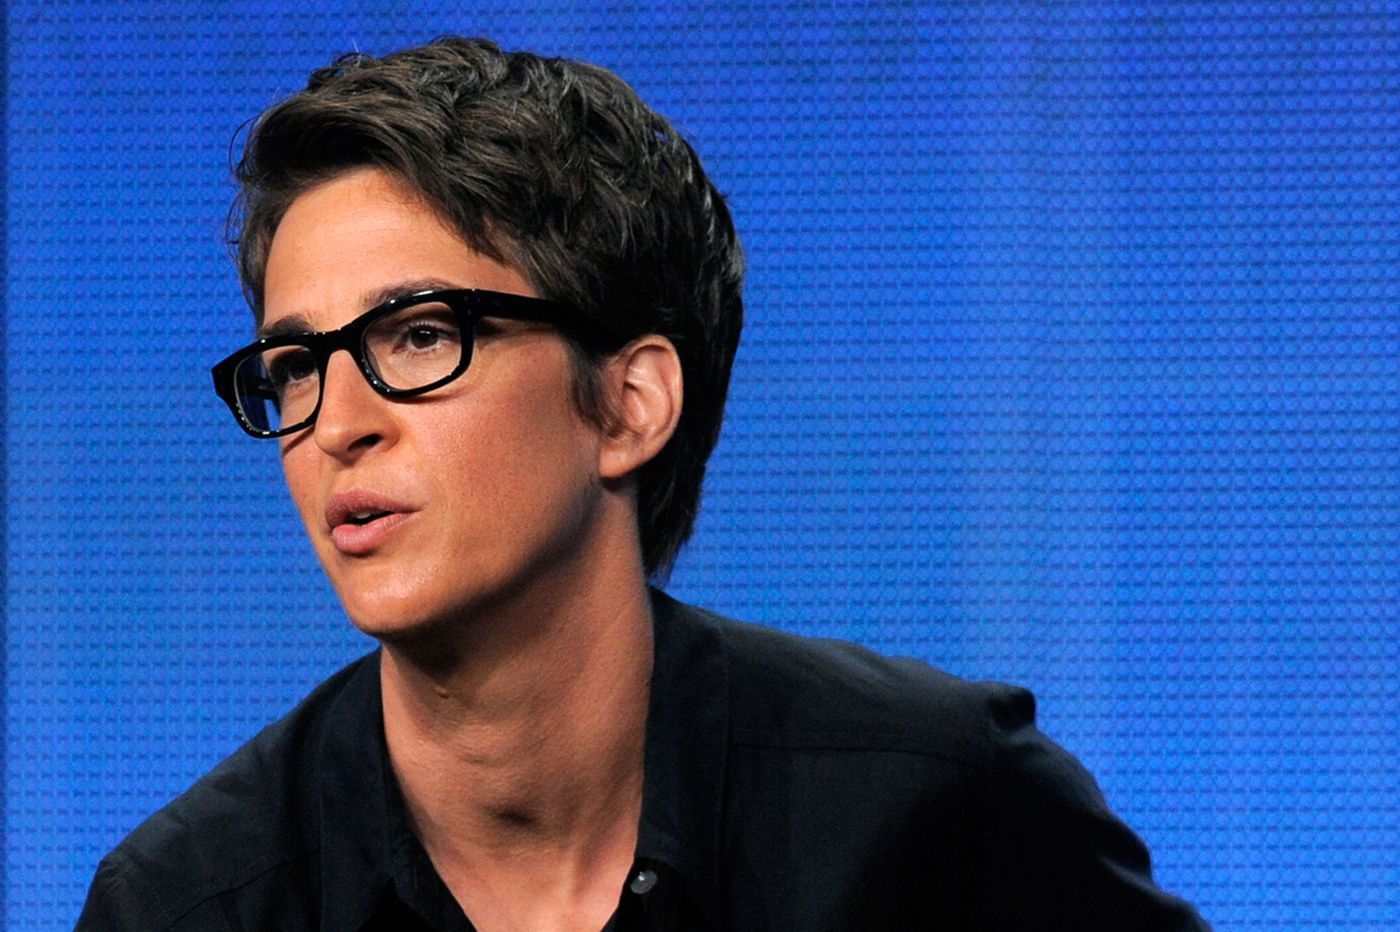 Rachel Maddow back on MSNBC tonight after two-week absence